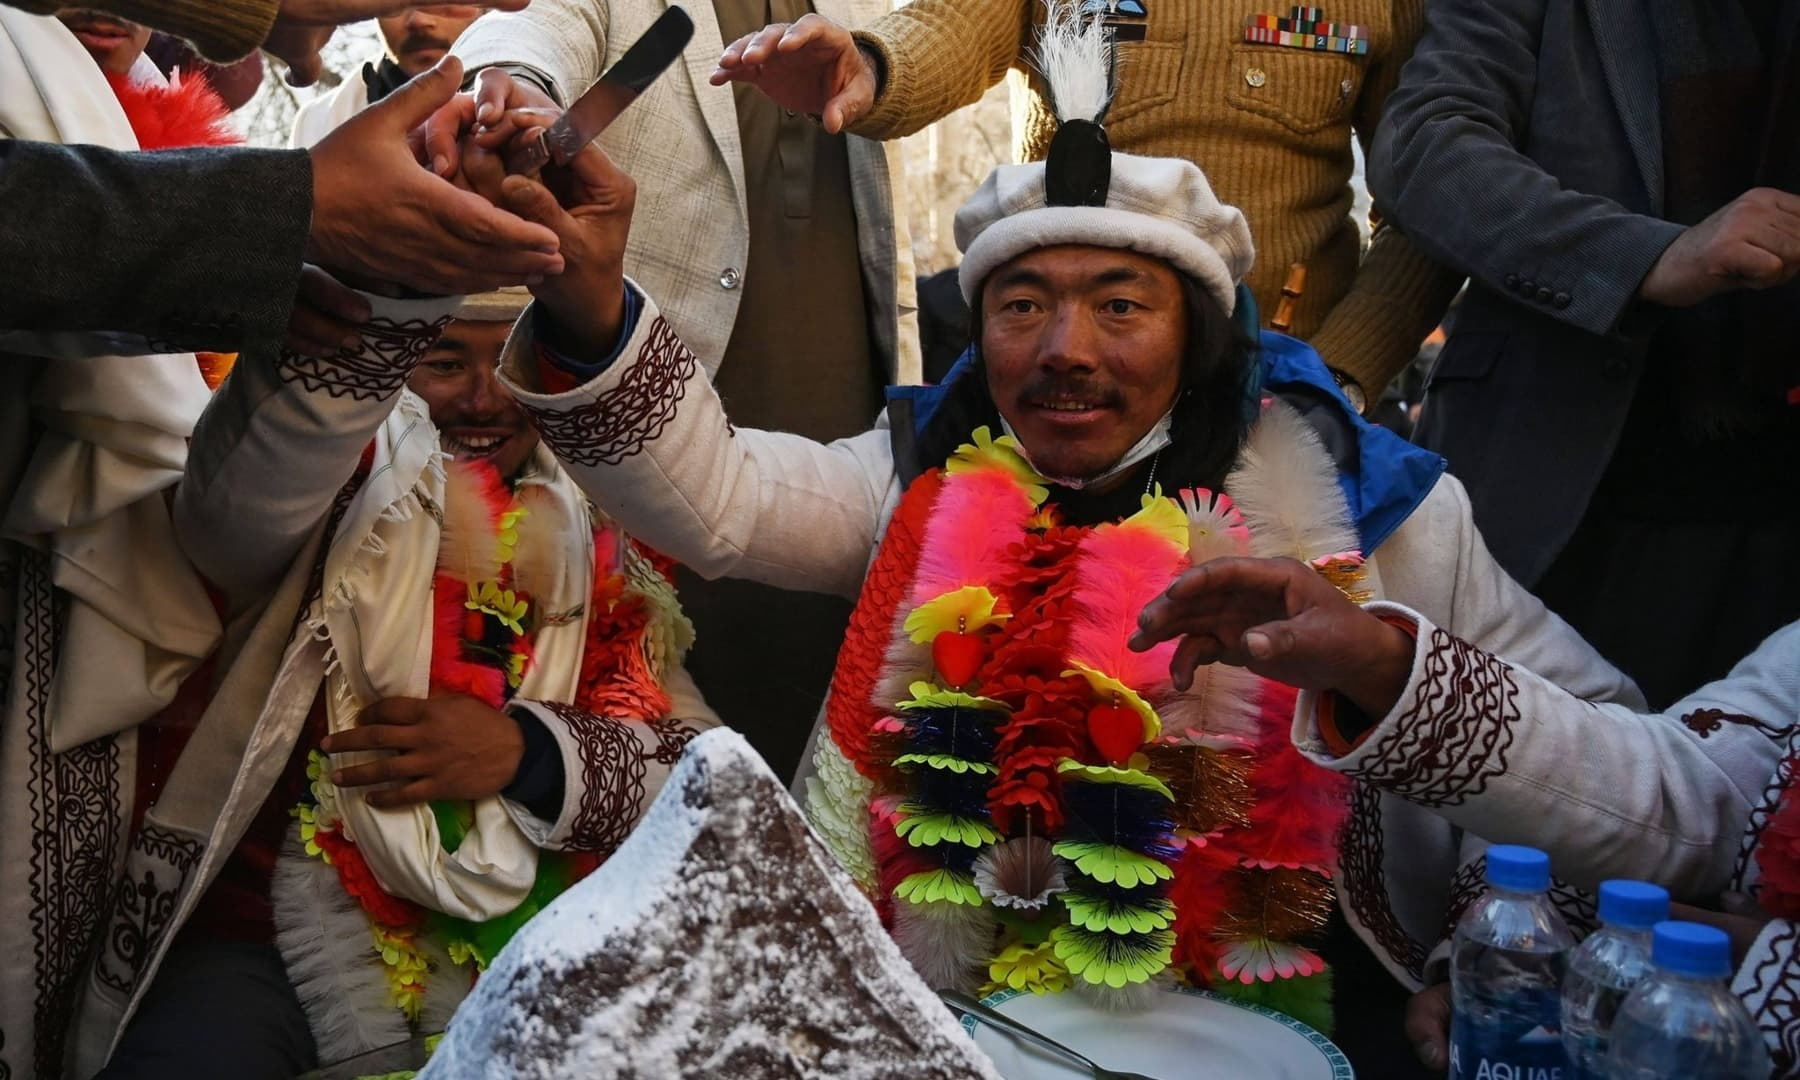 Nepal's climbers Nirmal Purja (L) and Mingma Sherpa (R) cut a cake upon their arrival after becoming the first to summit Pakistan's K2 in winter, during a ceremony at Shigar district in Gilgit-Baltistan, Jan 20, 2021. — AFP